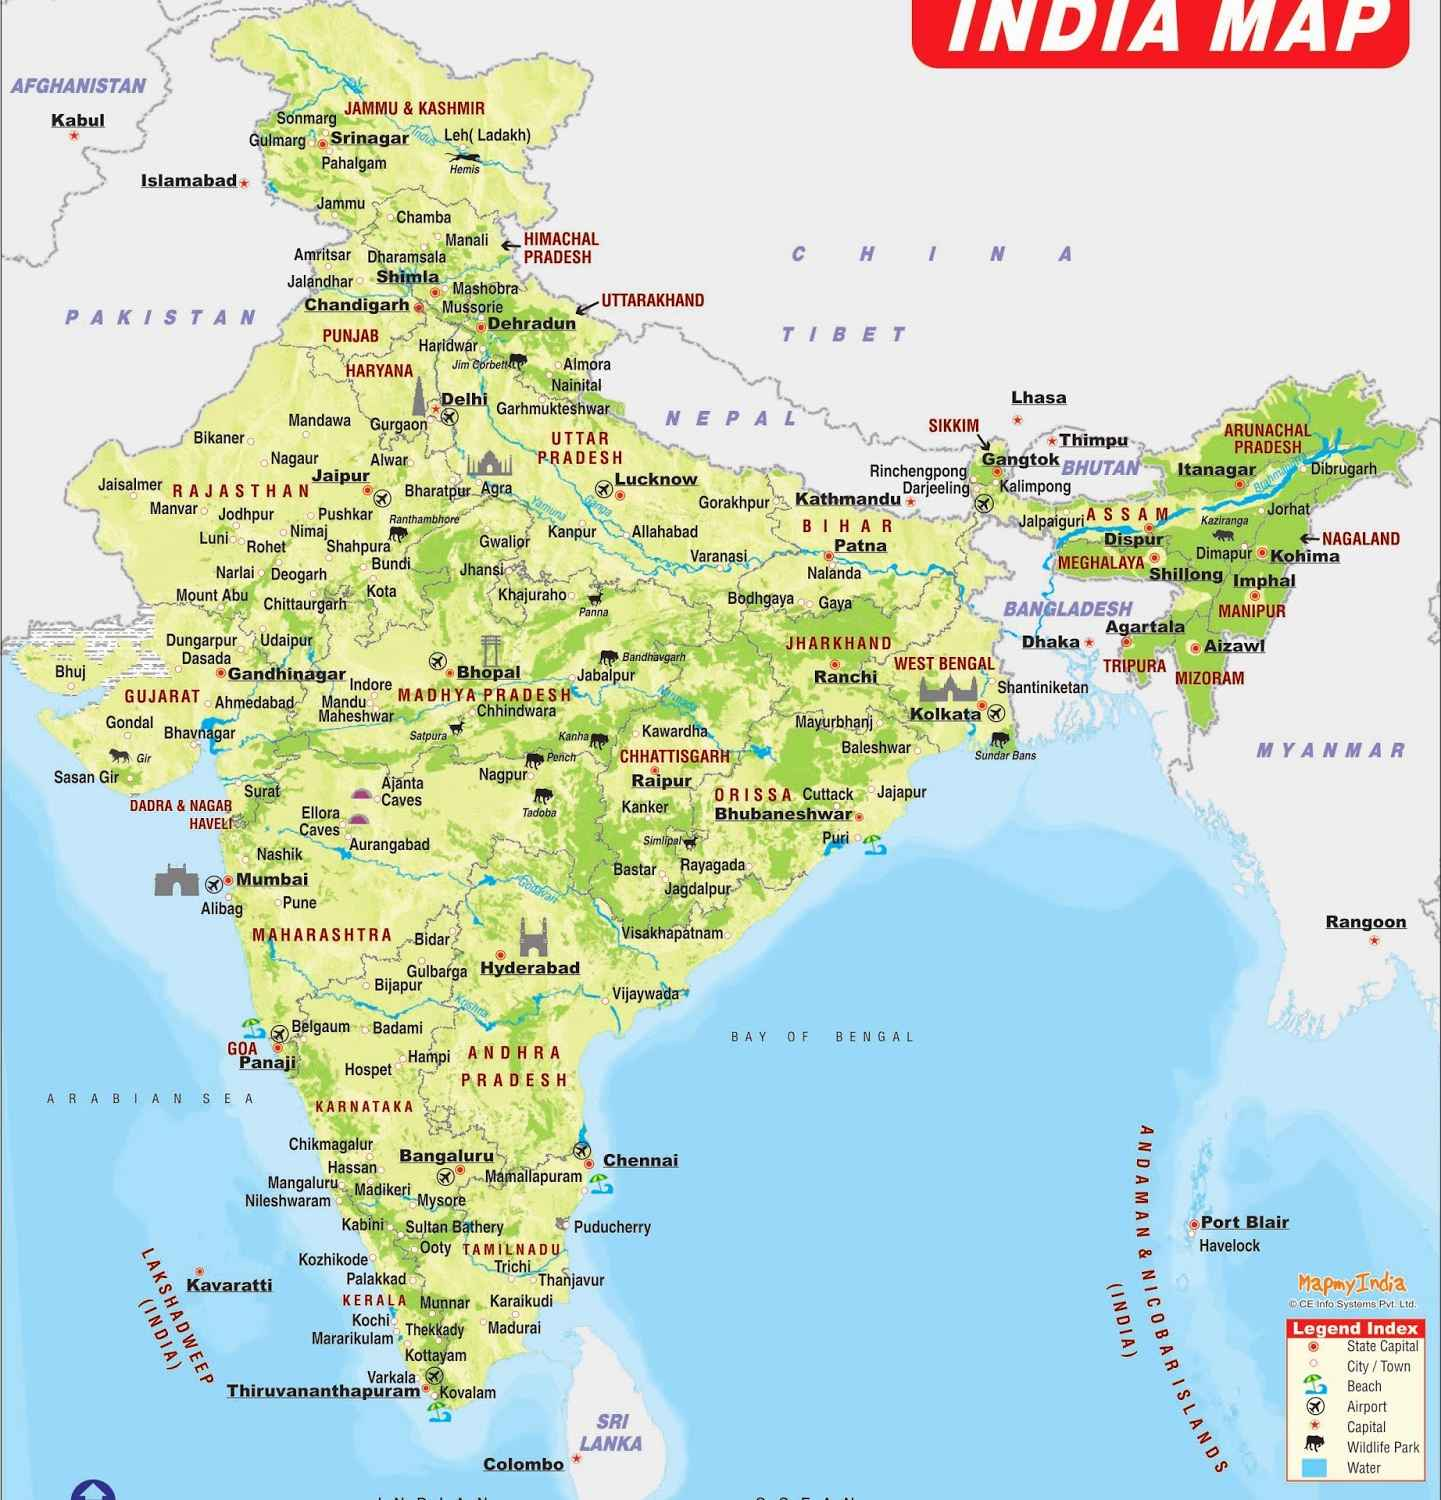 india map hd photo India Map Wallpapers For Mobile Wallpaper Cave india map hd photo